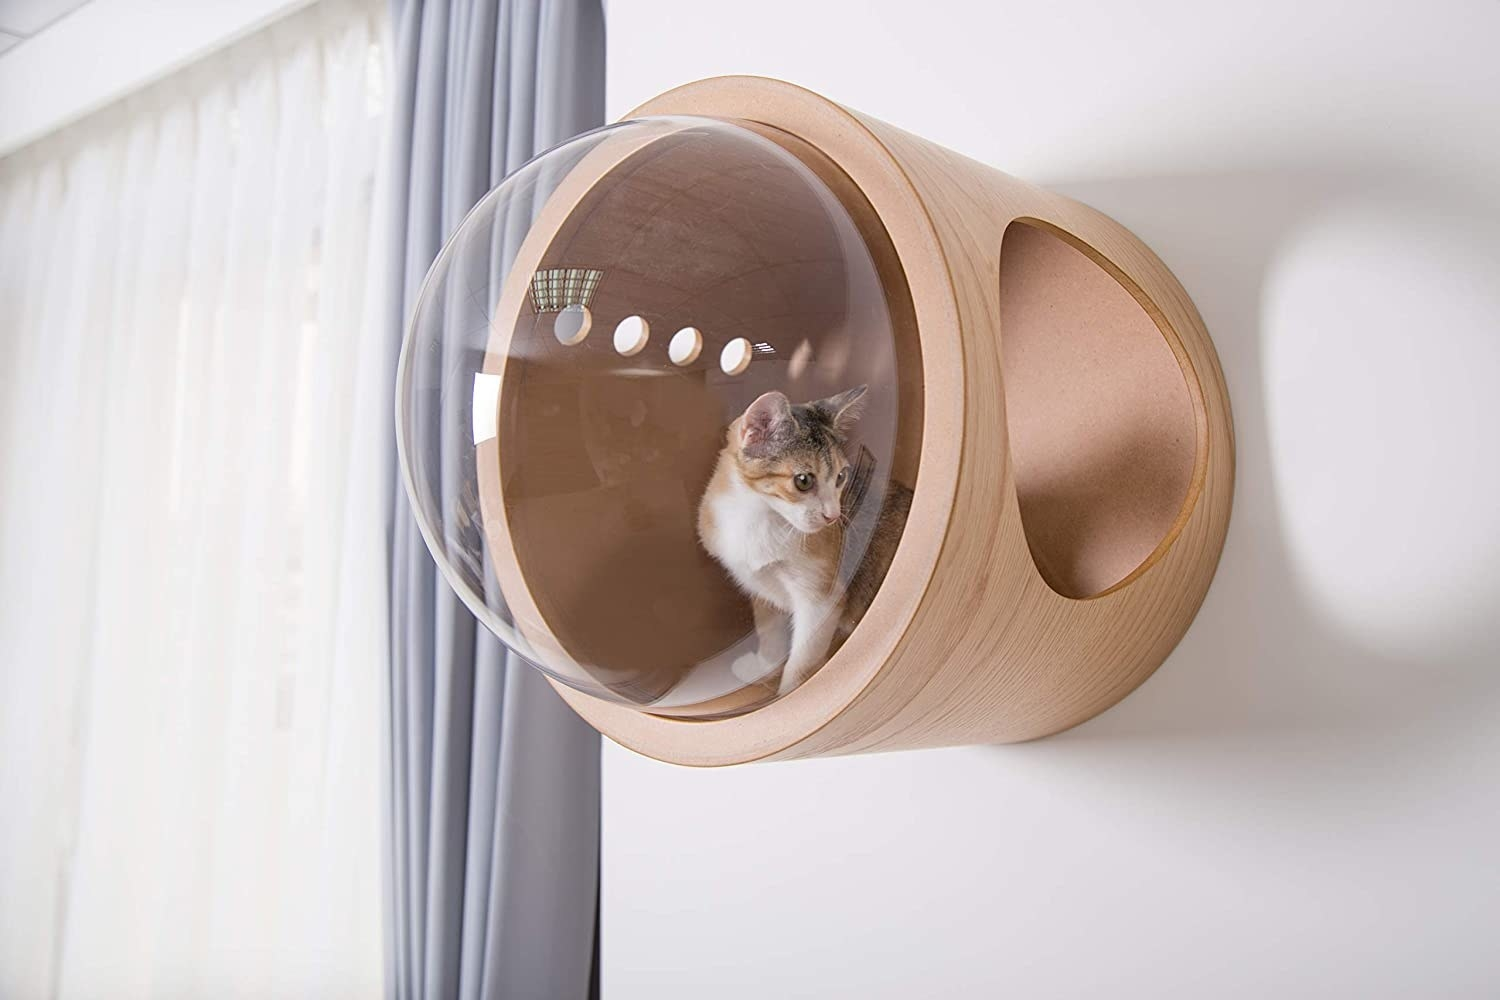 The cat bed, mounted to the wall, with a large round opening on one side and a large clear acrylic viewing bubble